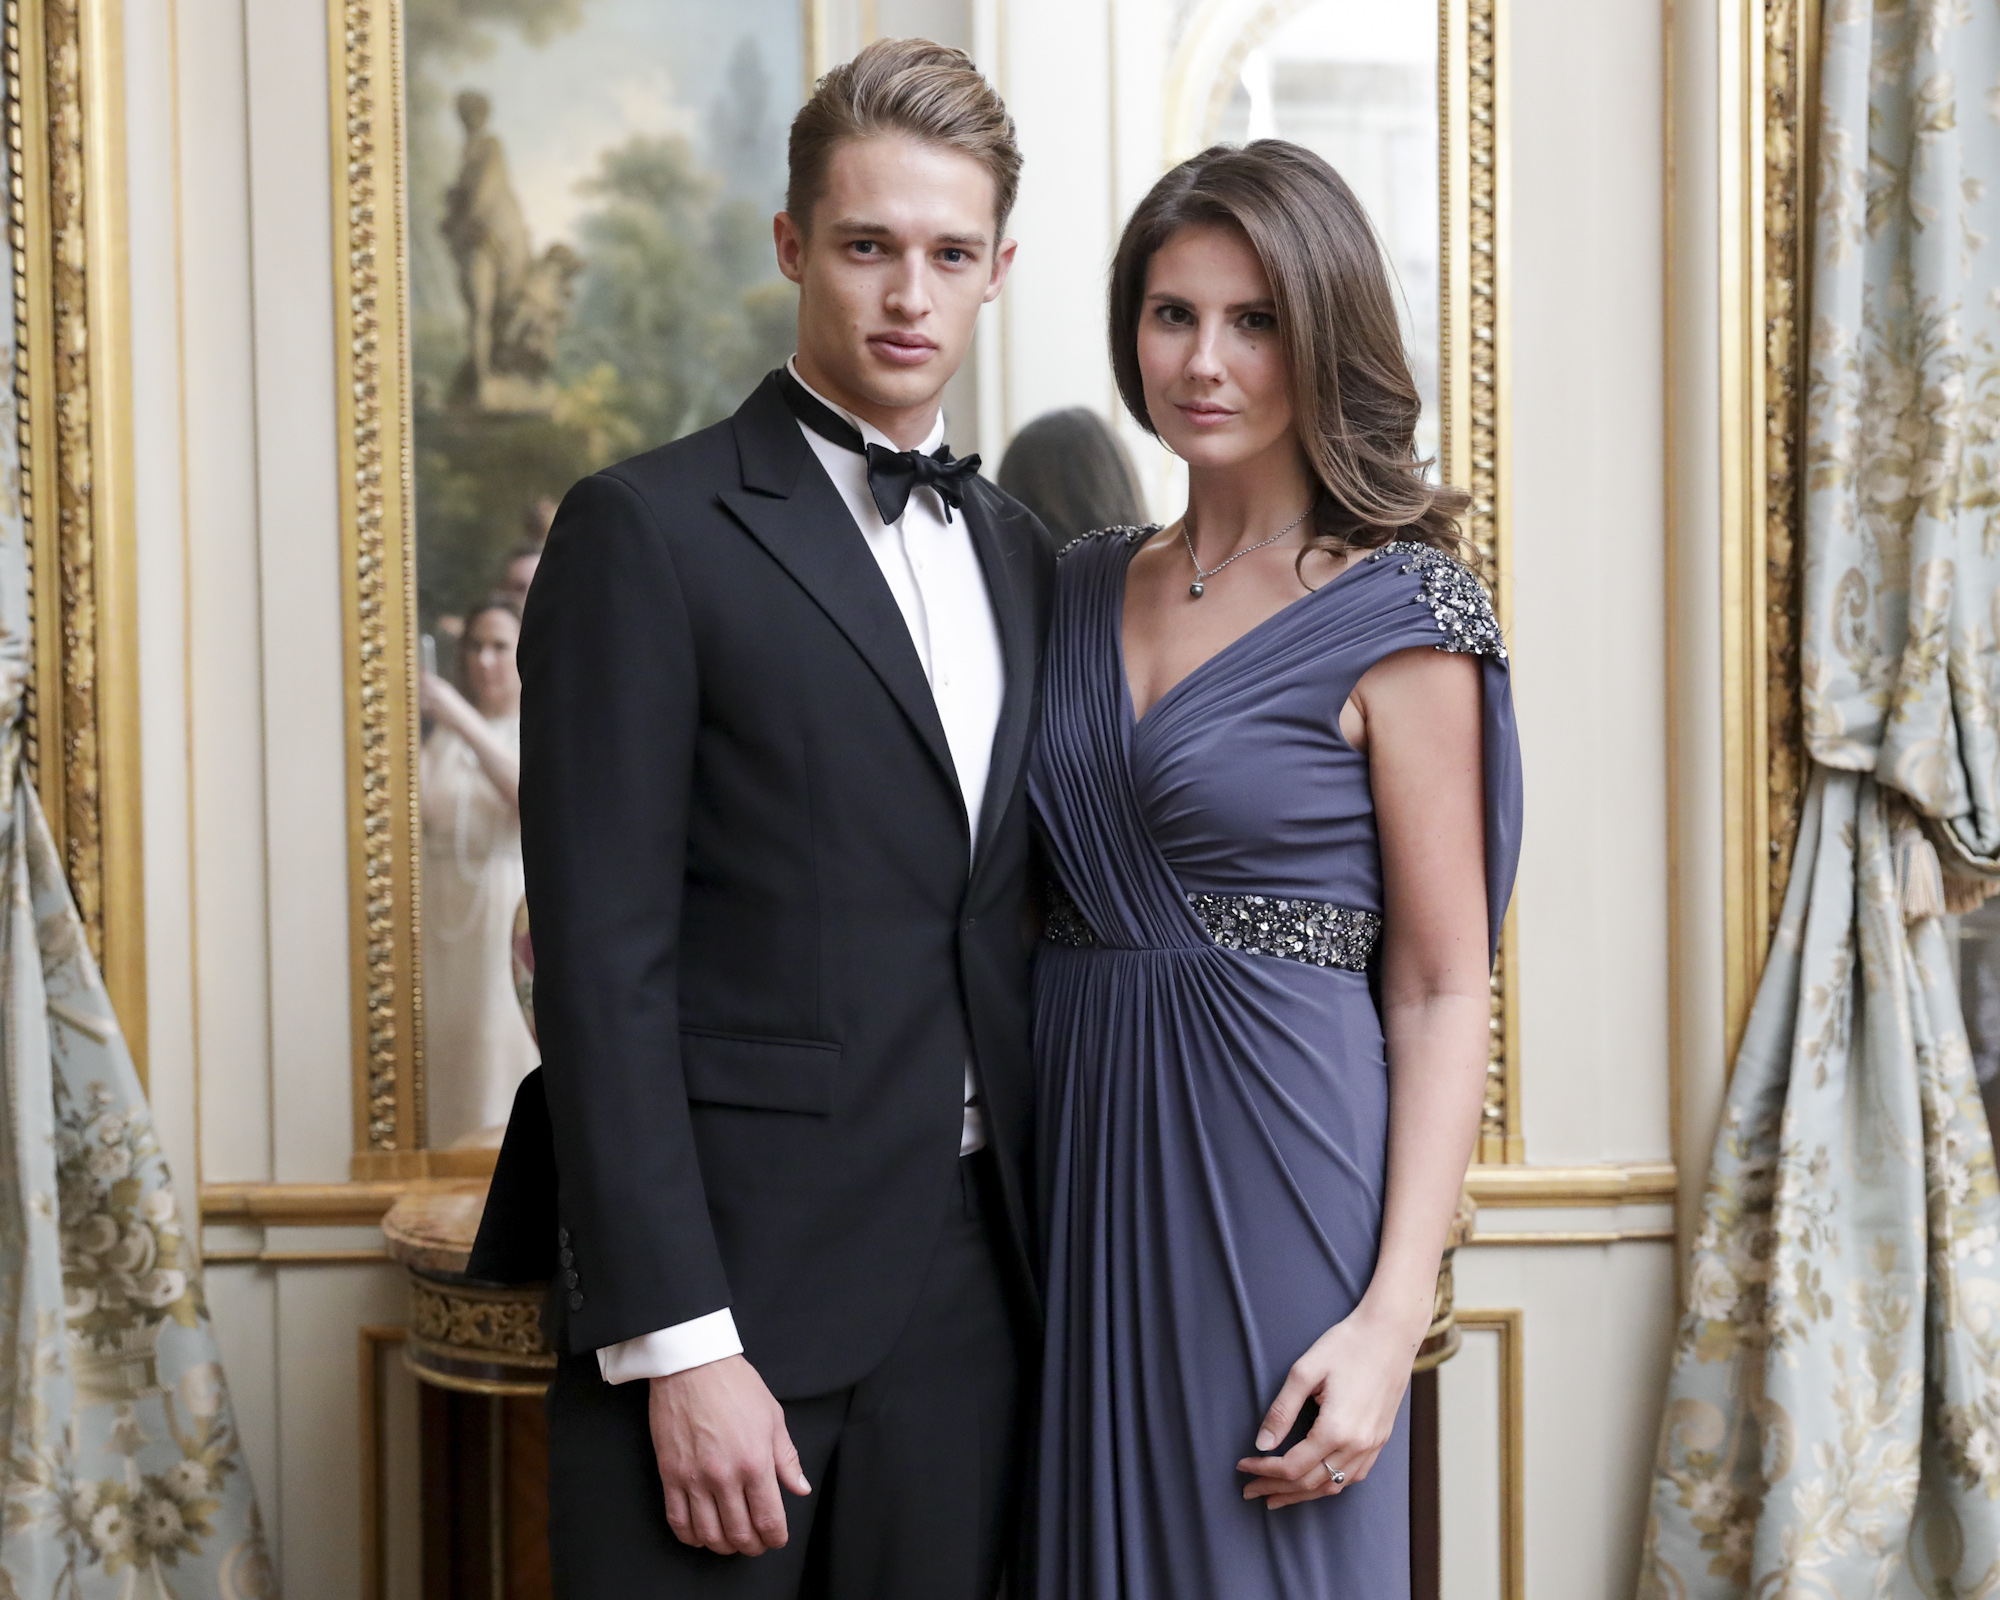 Morten Nielsen and Francesca Dolnier attend The Frick Collection's 20th Annual Young Fellows Ball at 1 East 70th Street on Thursday, March 21st, 2019. Photography, Courtesy of The Frick Collection.